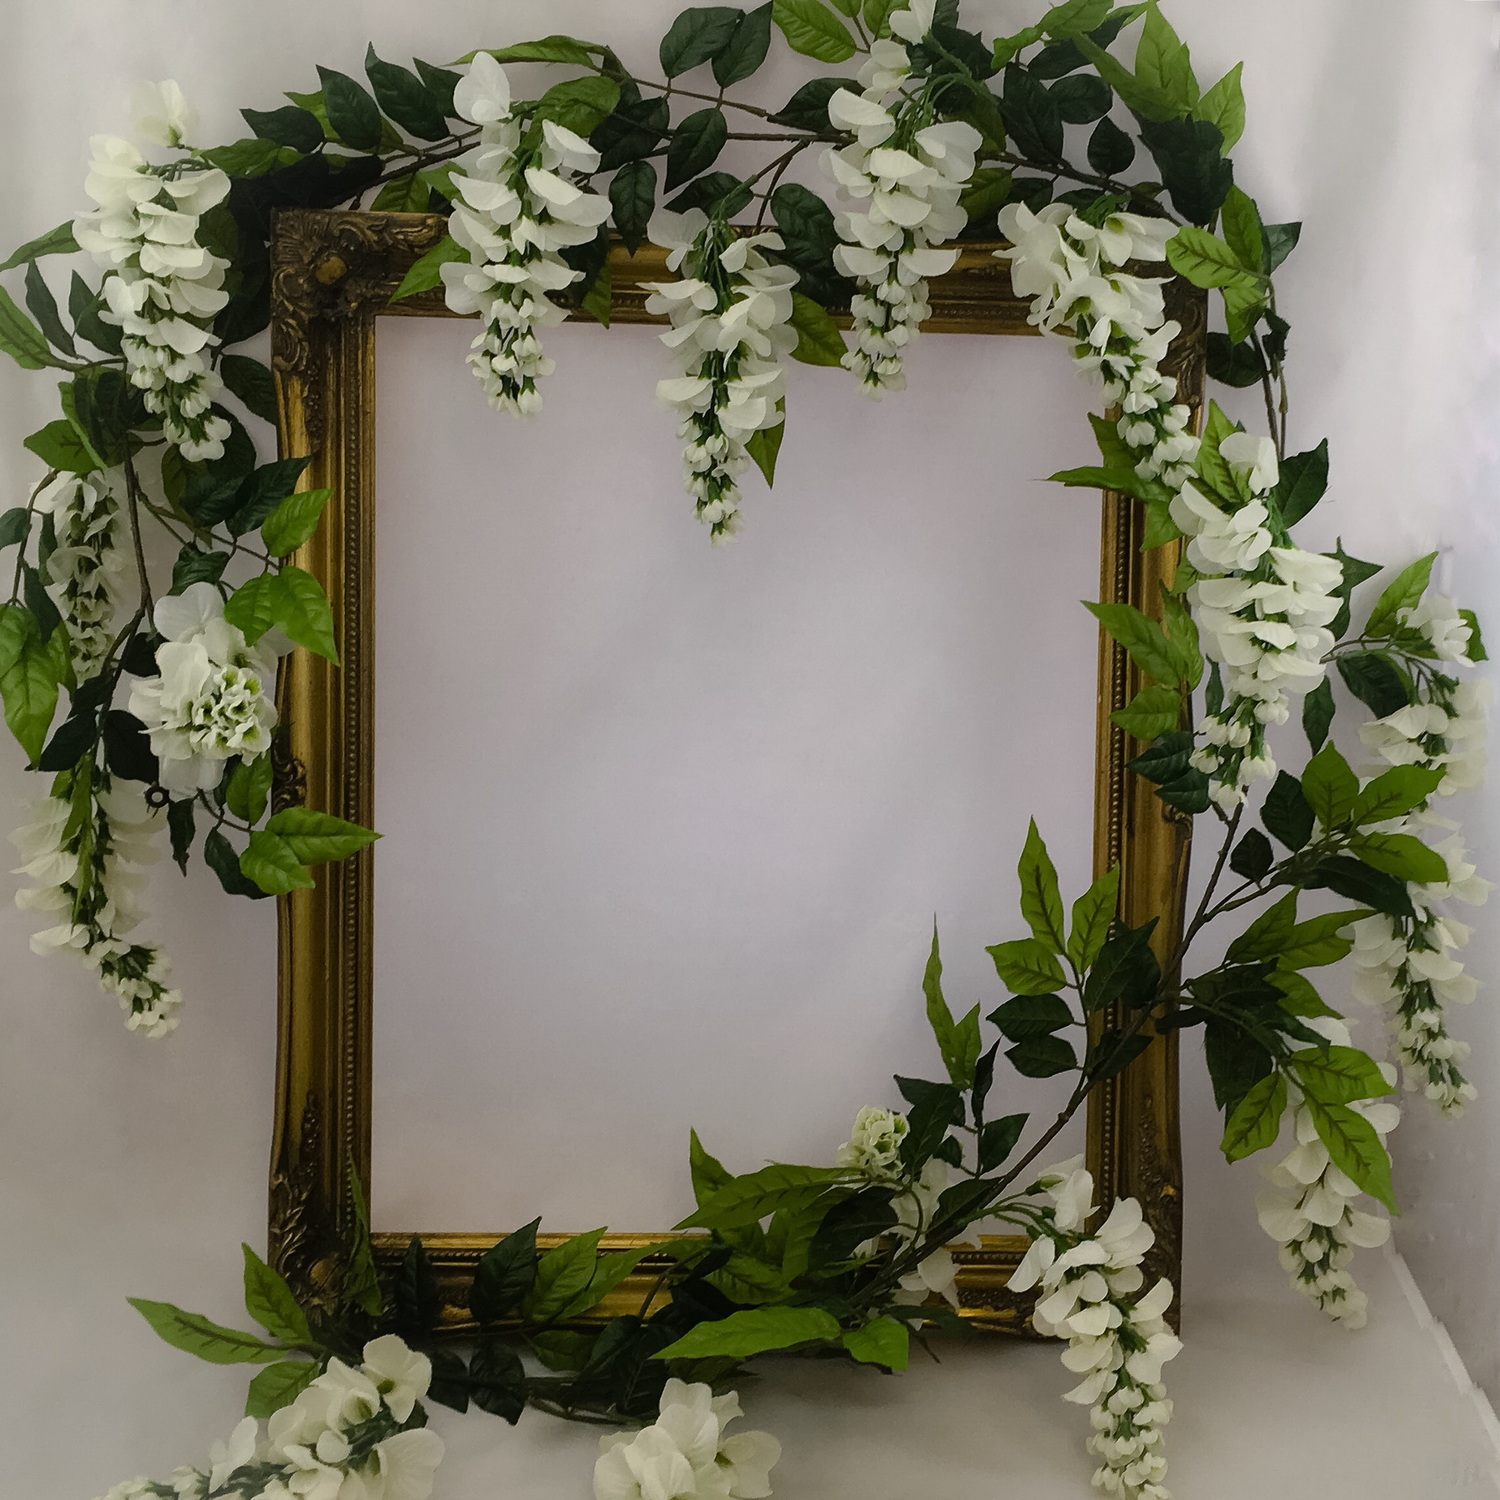 210cm Wisteria Garland Ivory In 2020